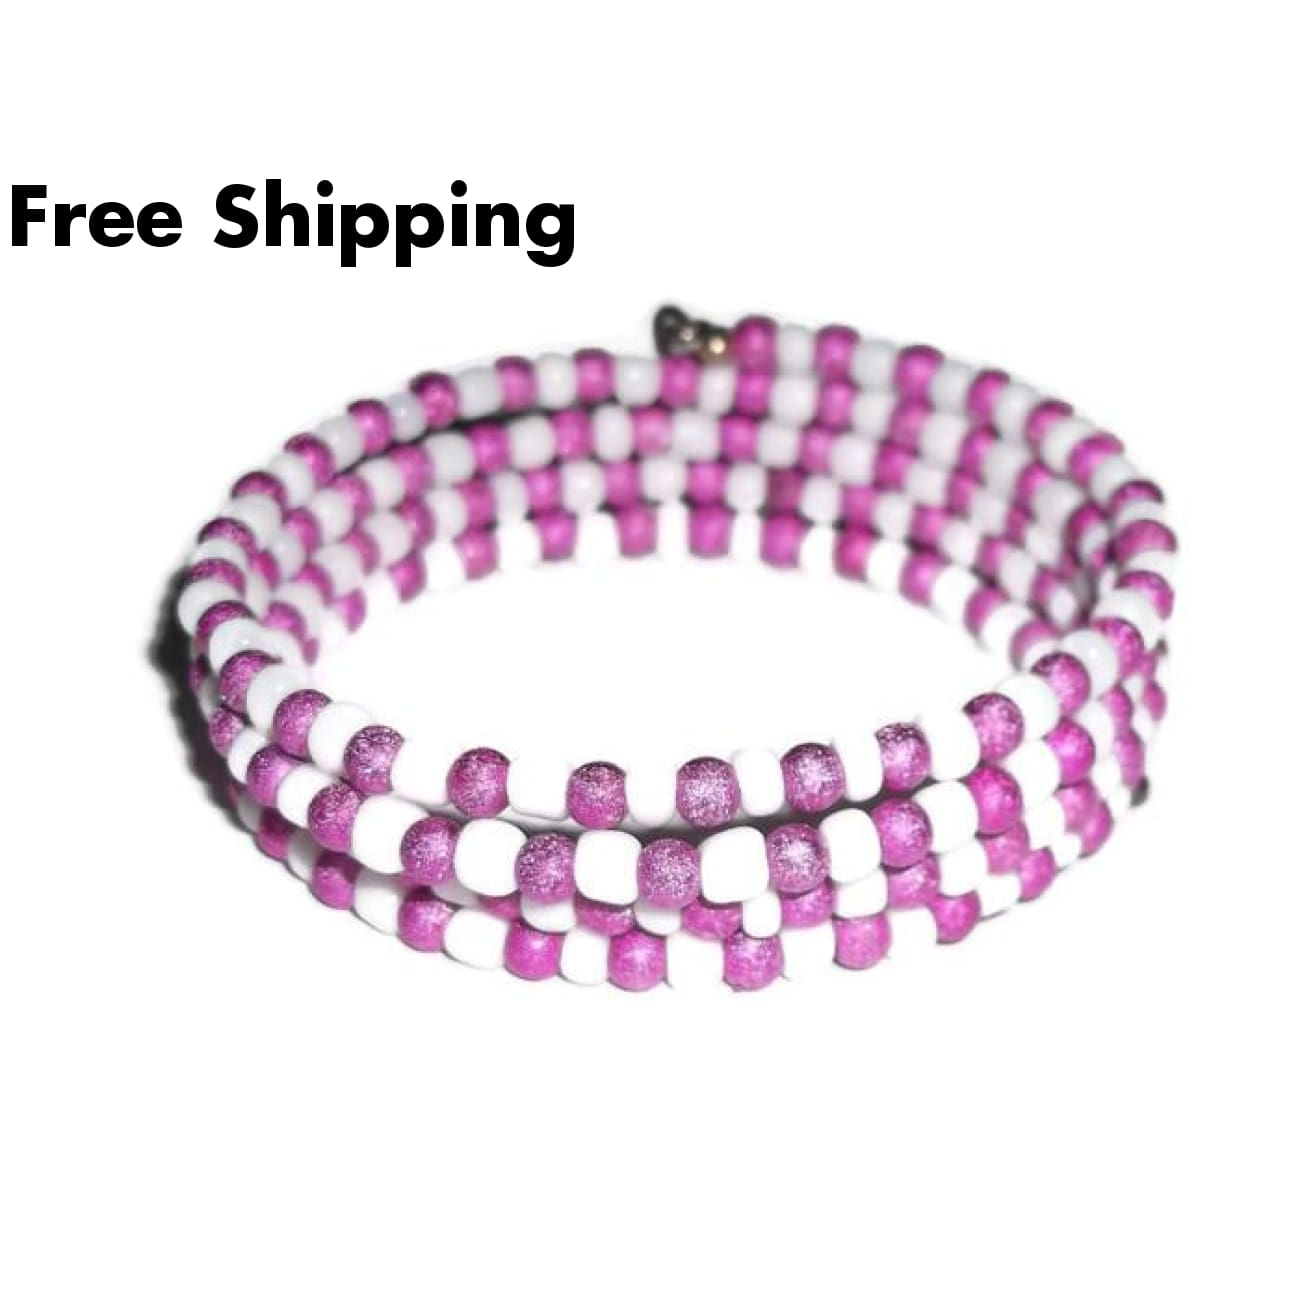 Bible Hot Pink Stardust And White Glass Beaded Artisan Crafted Wrap Bracelet (Xs - M) - New Arrival